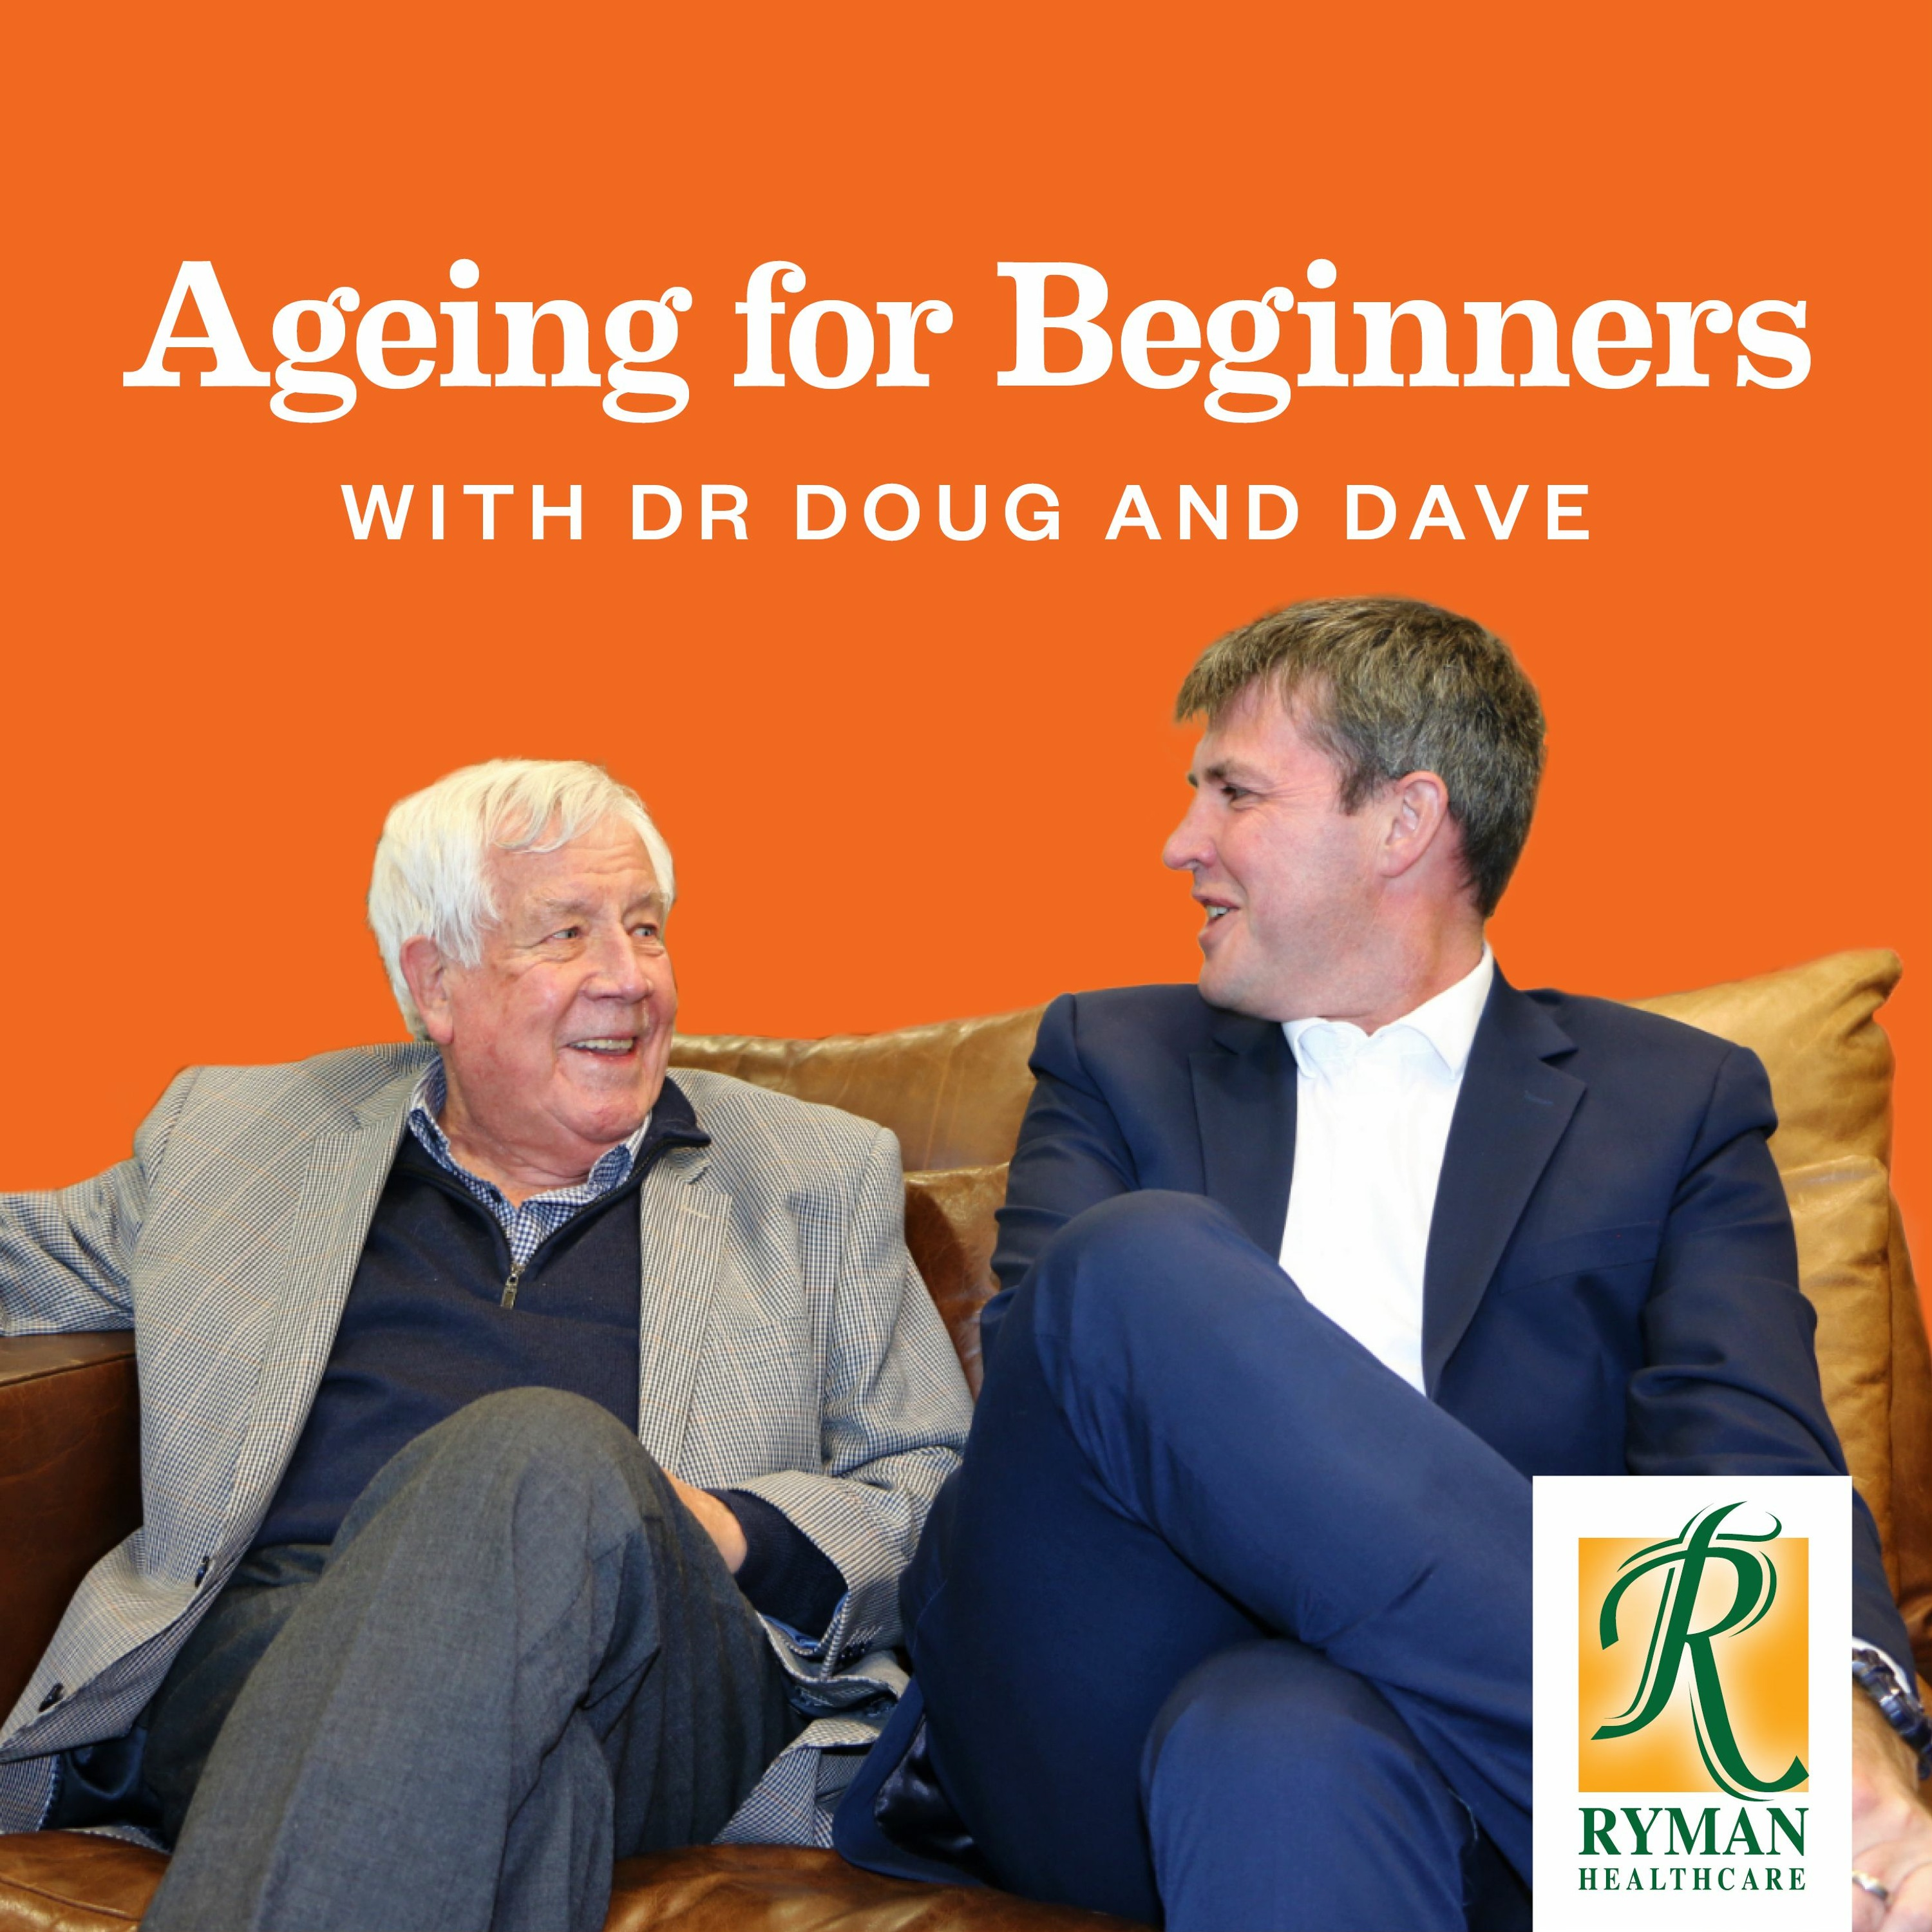 Ageing for Beginners - Ageing For Beginners - Episode 1 - Alzheimers in the family